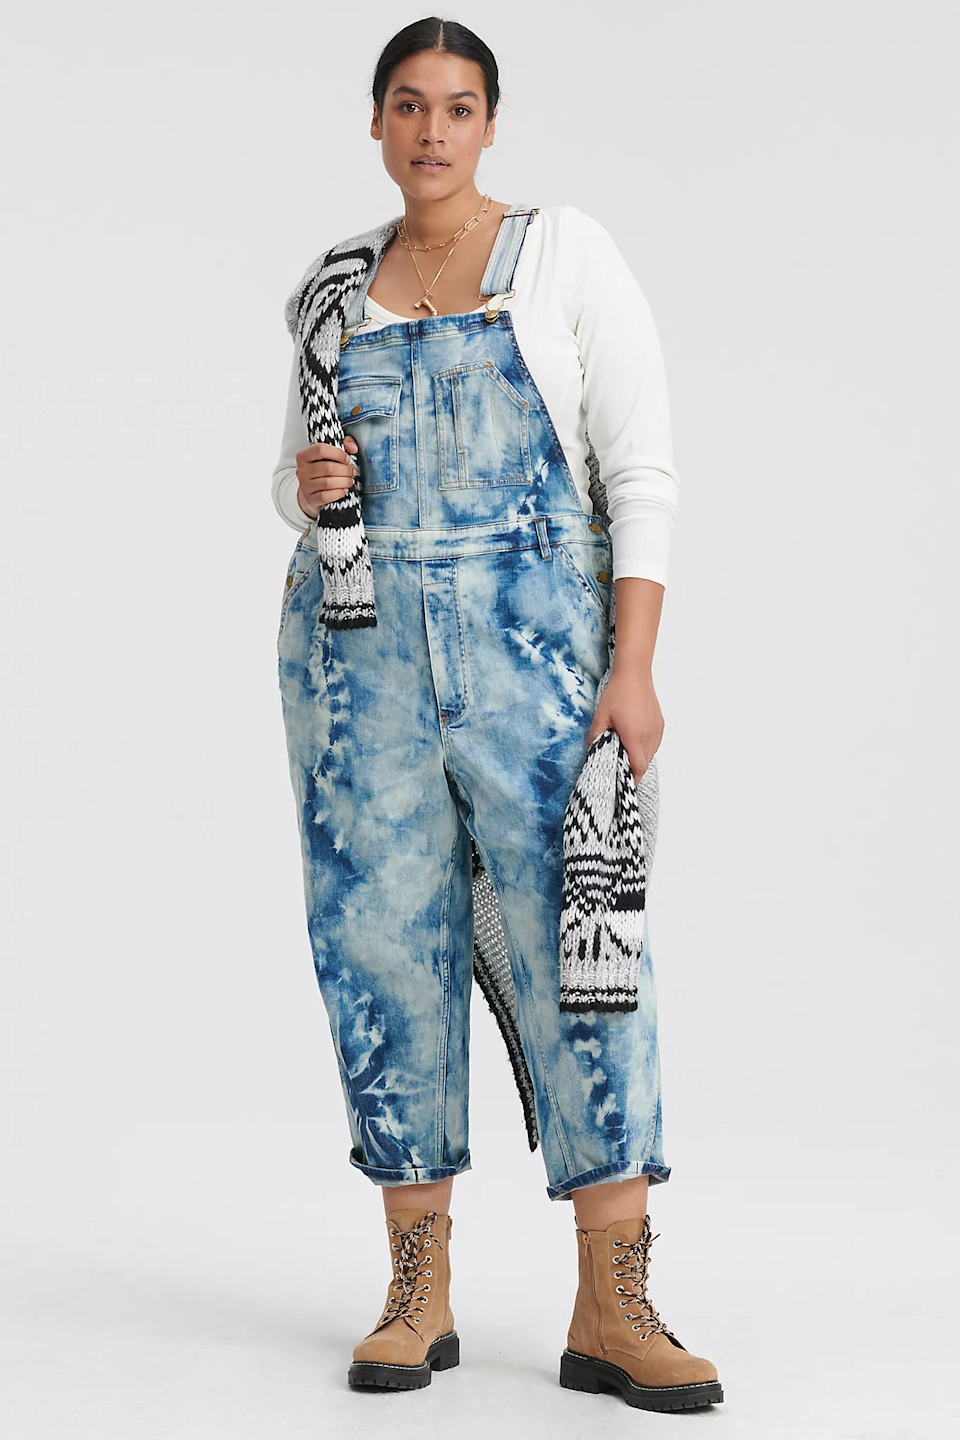 """<h2>Revamped Overalls</h2><br>""""We can't get enough of overalls in new dye techniques, patterns, washes, or with a ruffle. Overalls are so versatile she can wear them lounging in a tee, or out for a walk in town."""" <br><br>– Anu Narayanan, Chief Merchandising Officer, Anthropologie Group<br><br><strong>Pilcro and the Letterpress</strong> Bleached Tie-Dye Denim Overalls, $, available at <a href=""""https://go.skimresources.com/?id=30283X879131&url=https%3A%2F%2Fwww.anthropologie.com%2Fshop%2Fpilcro-bleached-tie-dye-denim-overalls%3Fcolor%3D091%26type%3DSTANDARD%26quantity%3D1"""" rel=""""nofollow noopener"""" target=""""_blank"""" data-ylk=""""slk:Anthropologie"""" class=""""link rapid-noclick-resp"""">Anthropologie</a>"""